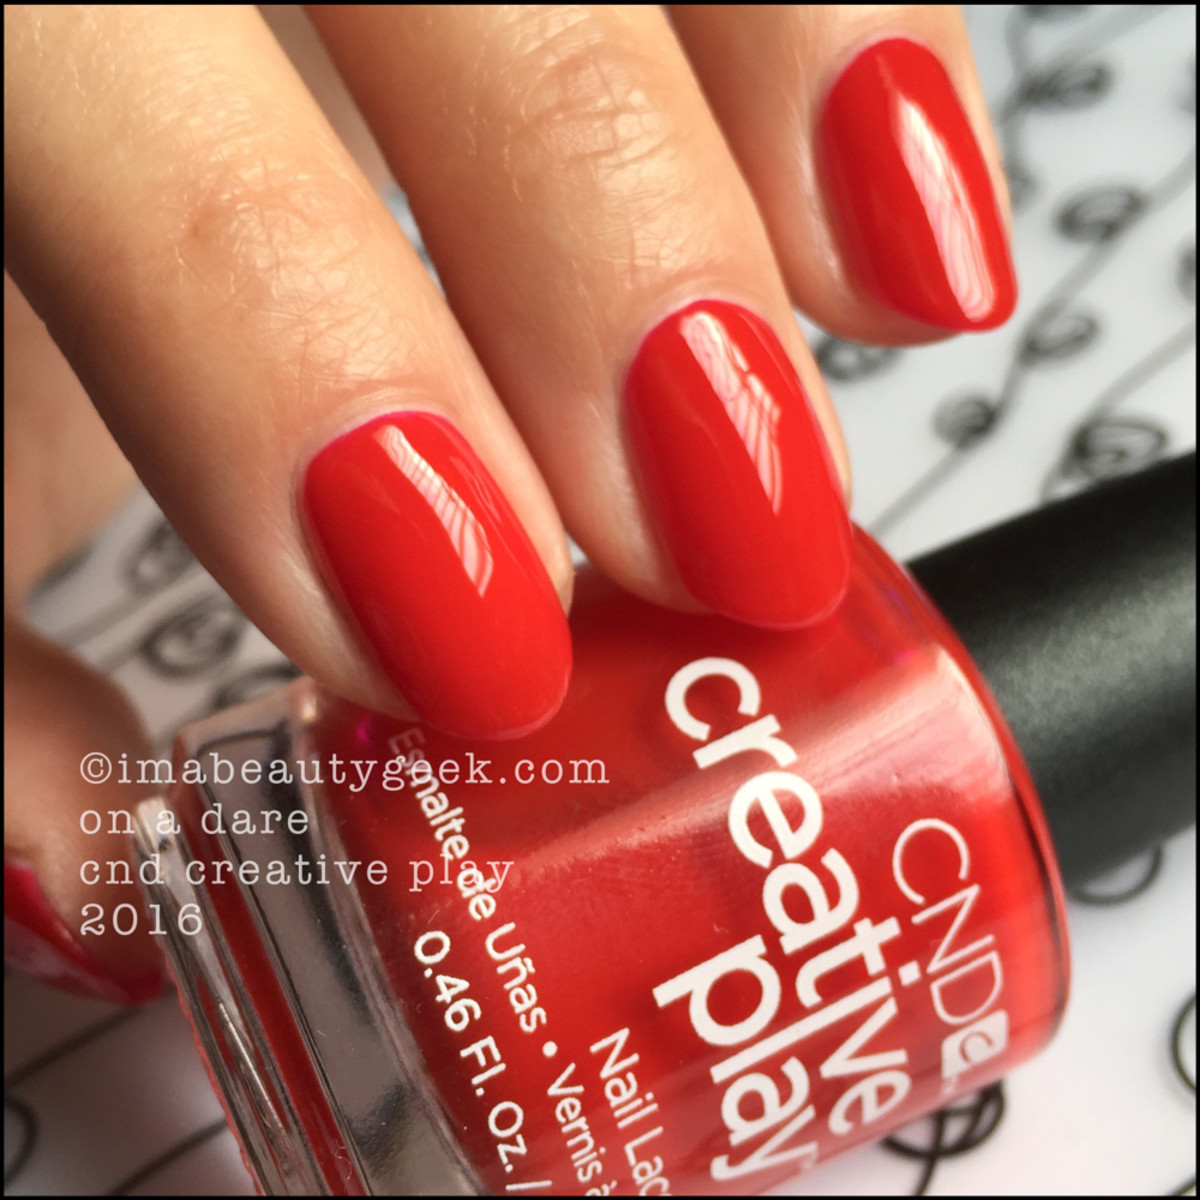 CND Creative Play On A Dare_CND Creative Play Nail Polish Swatches